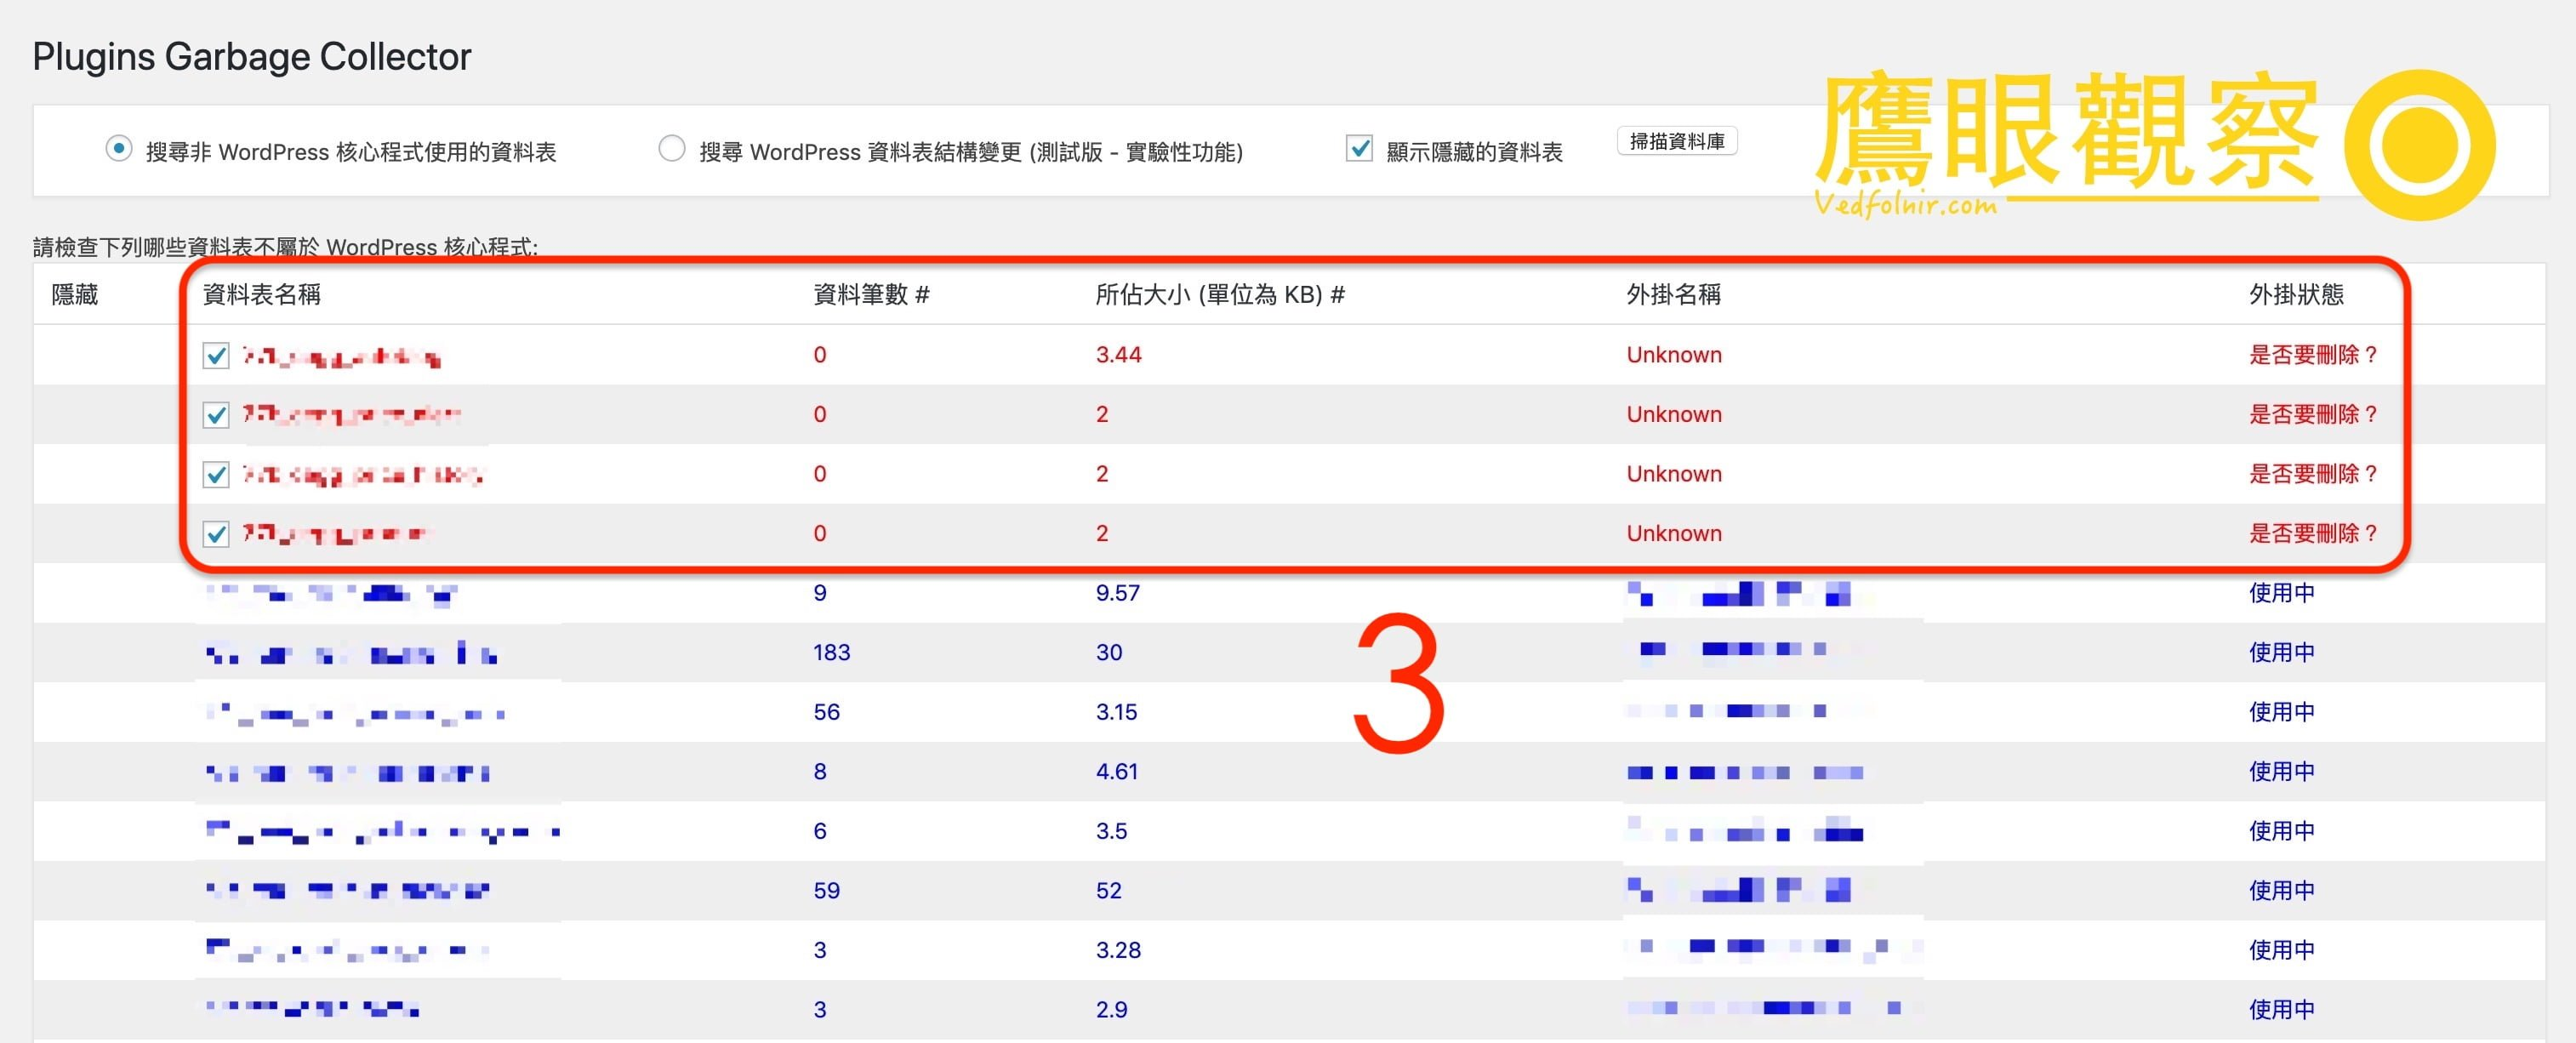 Plugins Garbage Collector Plugin Table List WordPress 資料庫清理移除「Plugins Garbage Collector」外掛程式推薦